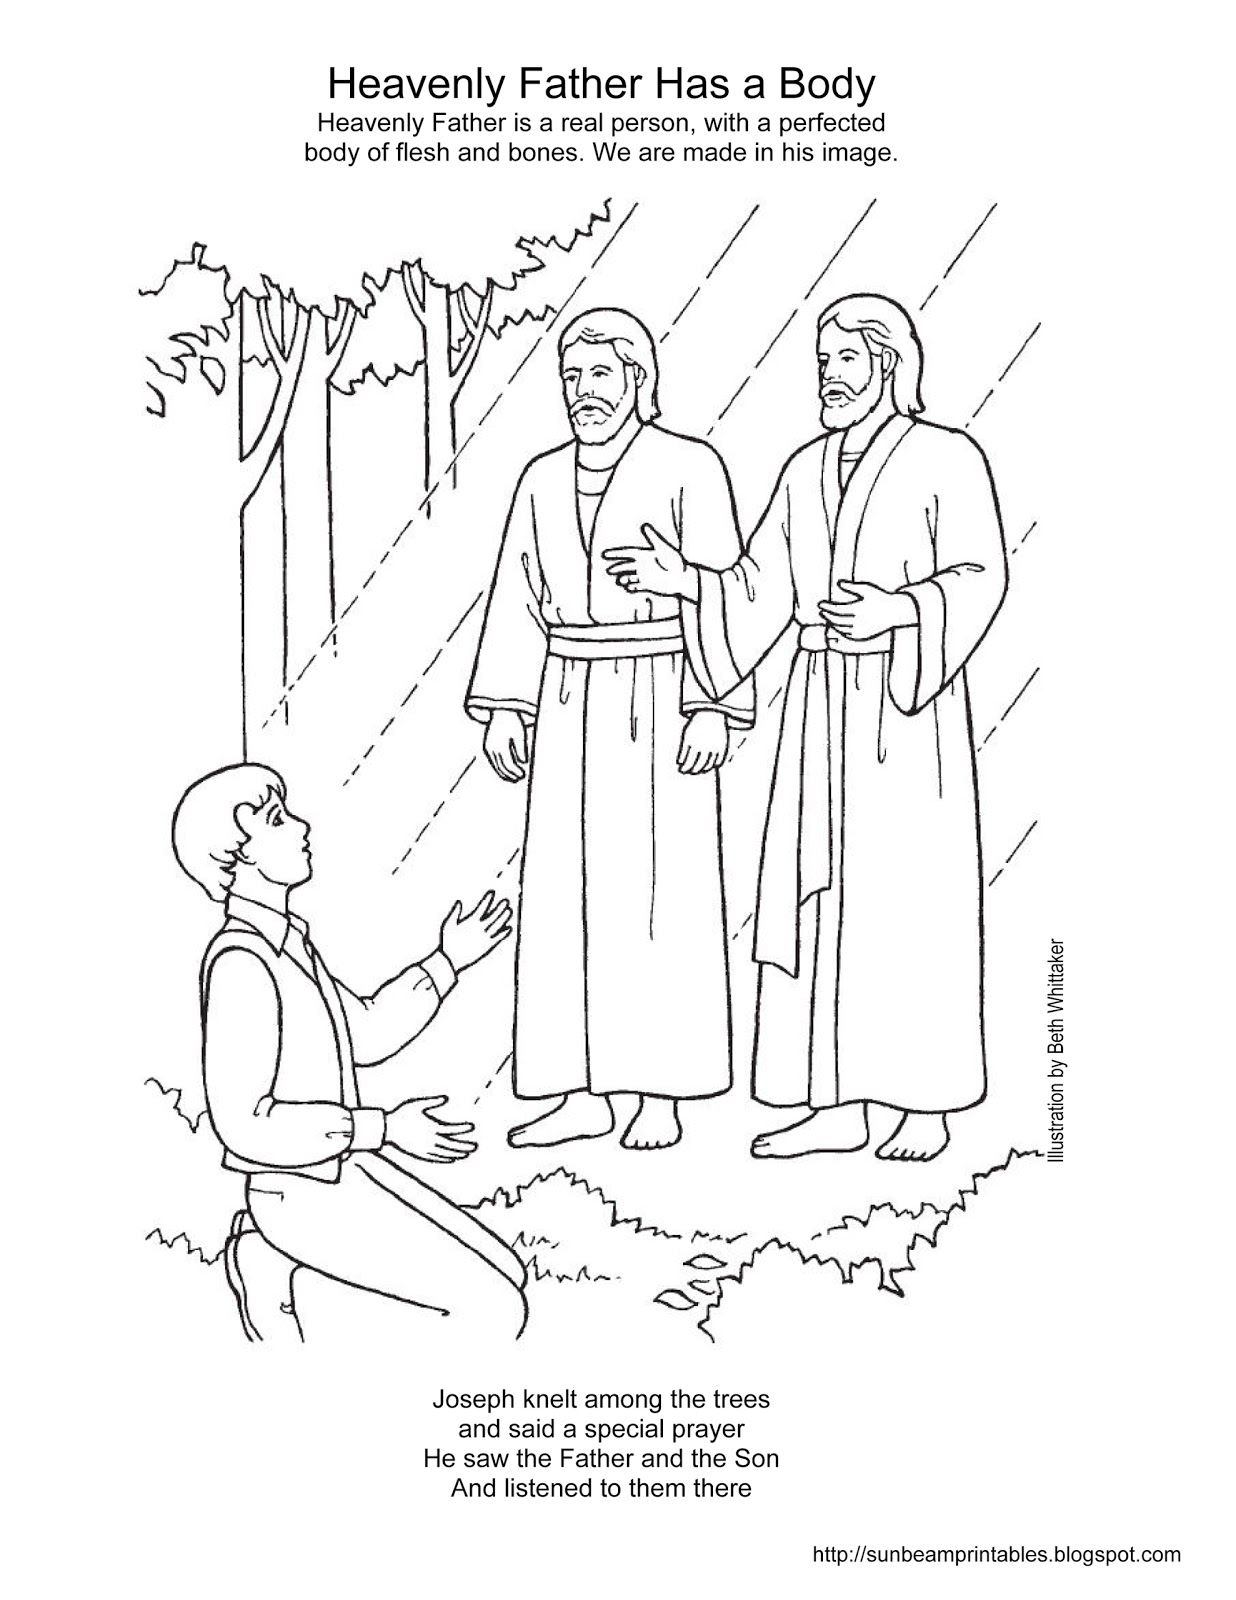 sunbeam printables coloring page for lesson 2 heavenly father